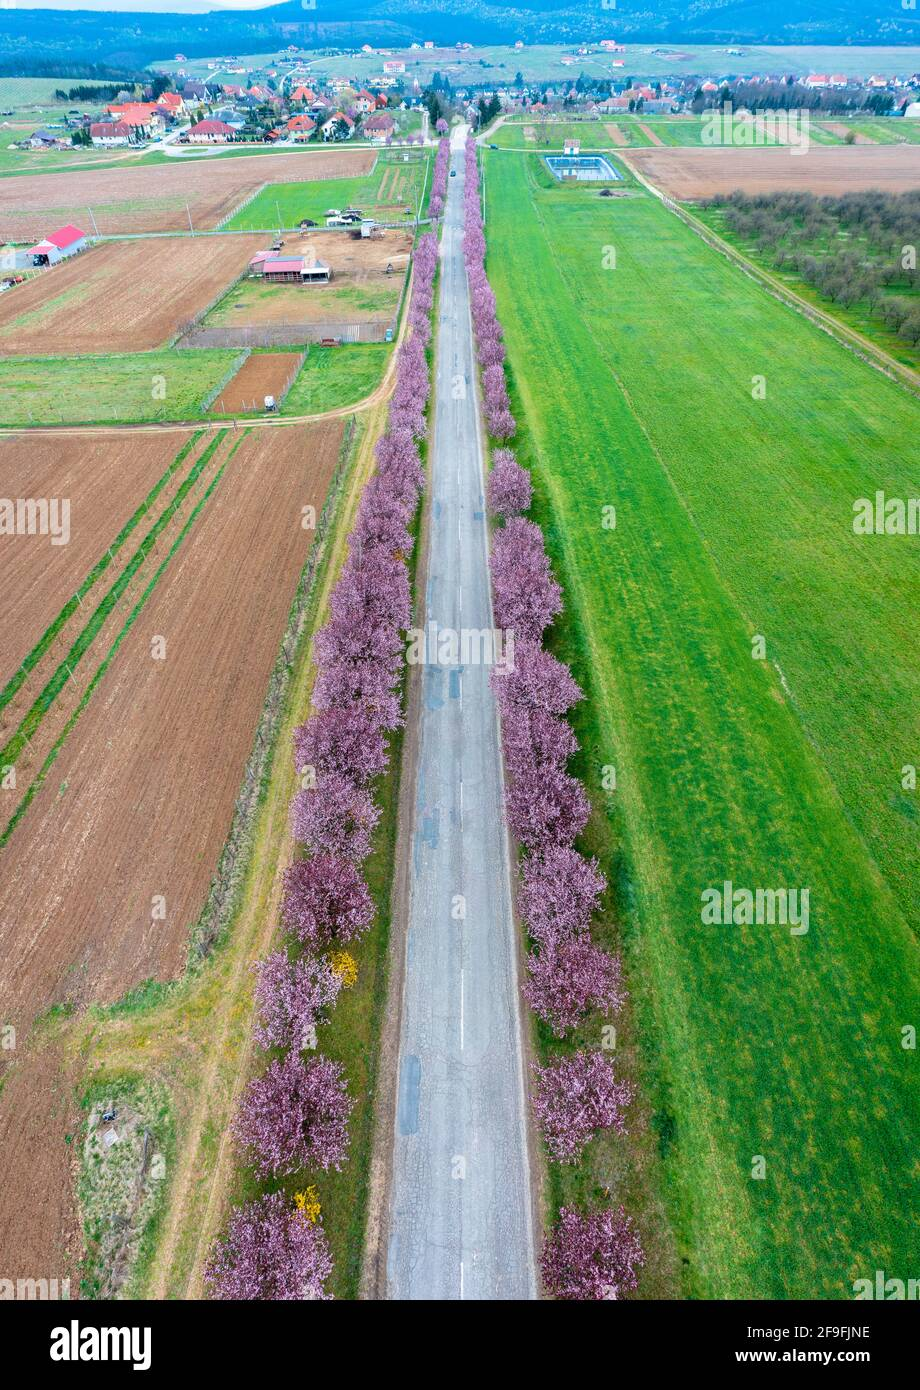 Berkenye, Hungary - Aerial view about beautiful blooming plum trees by the road. Spring sunrise  landscape, cherry blossom. Stock Photo